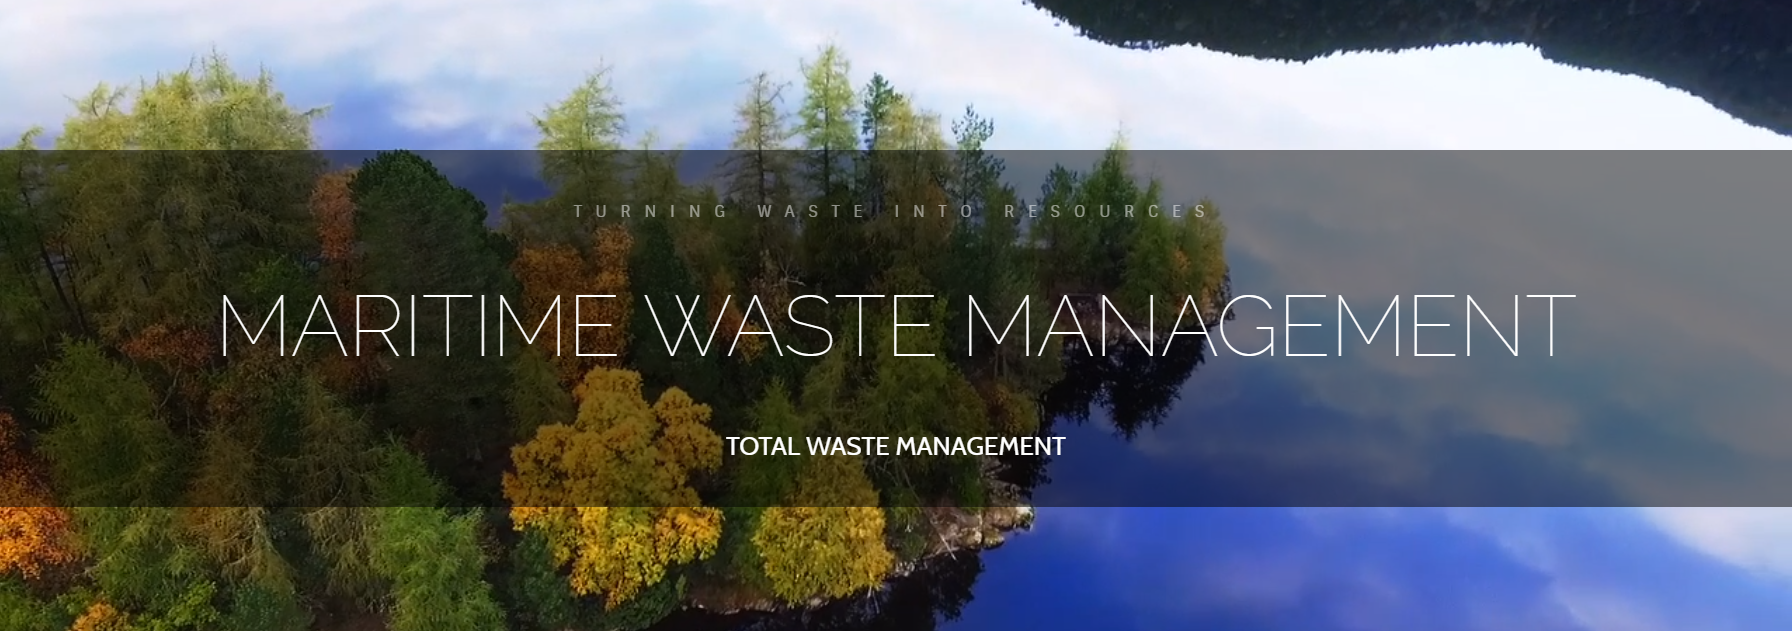 2018-05-14 09_26_43-Hjem - Maritime Waste Management.png